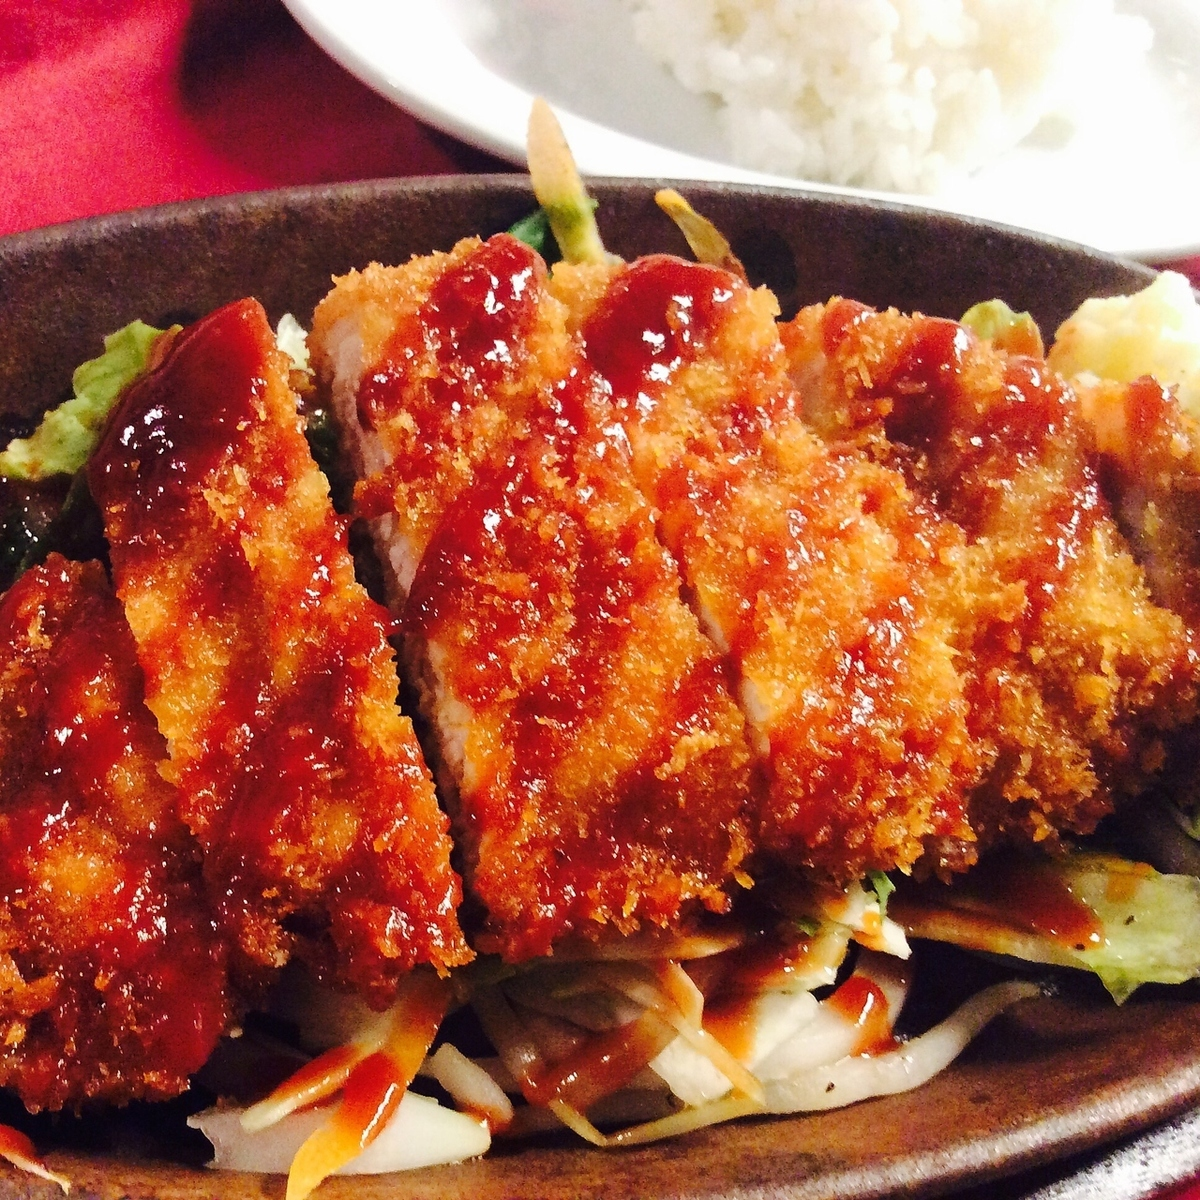 Itoshima pork cutlet steel set meal